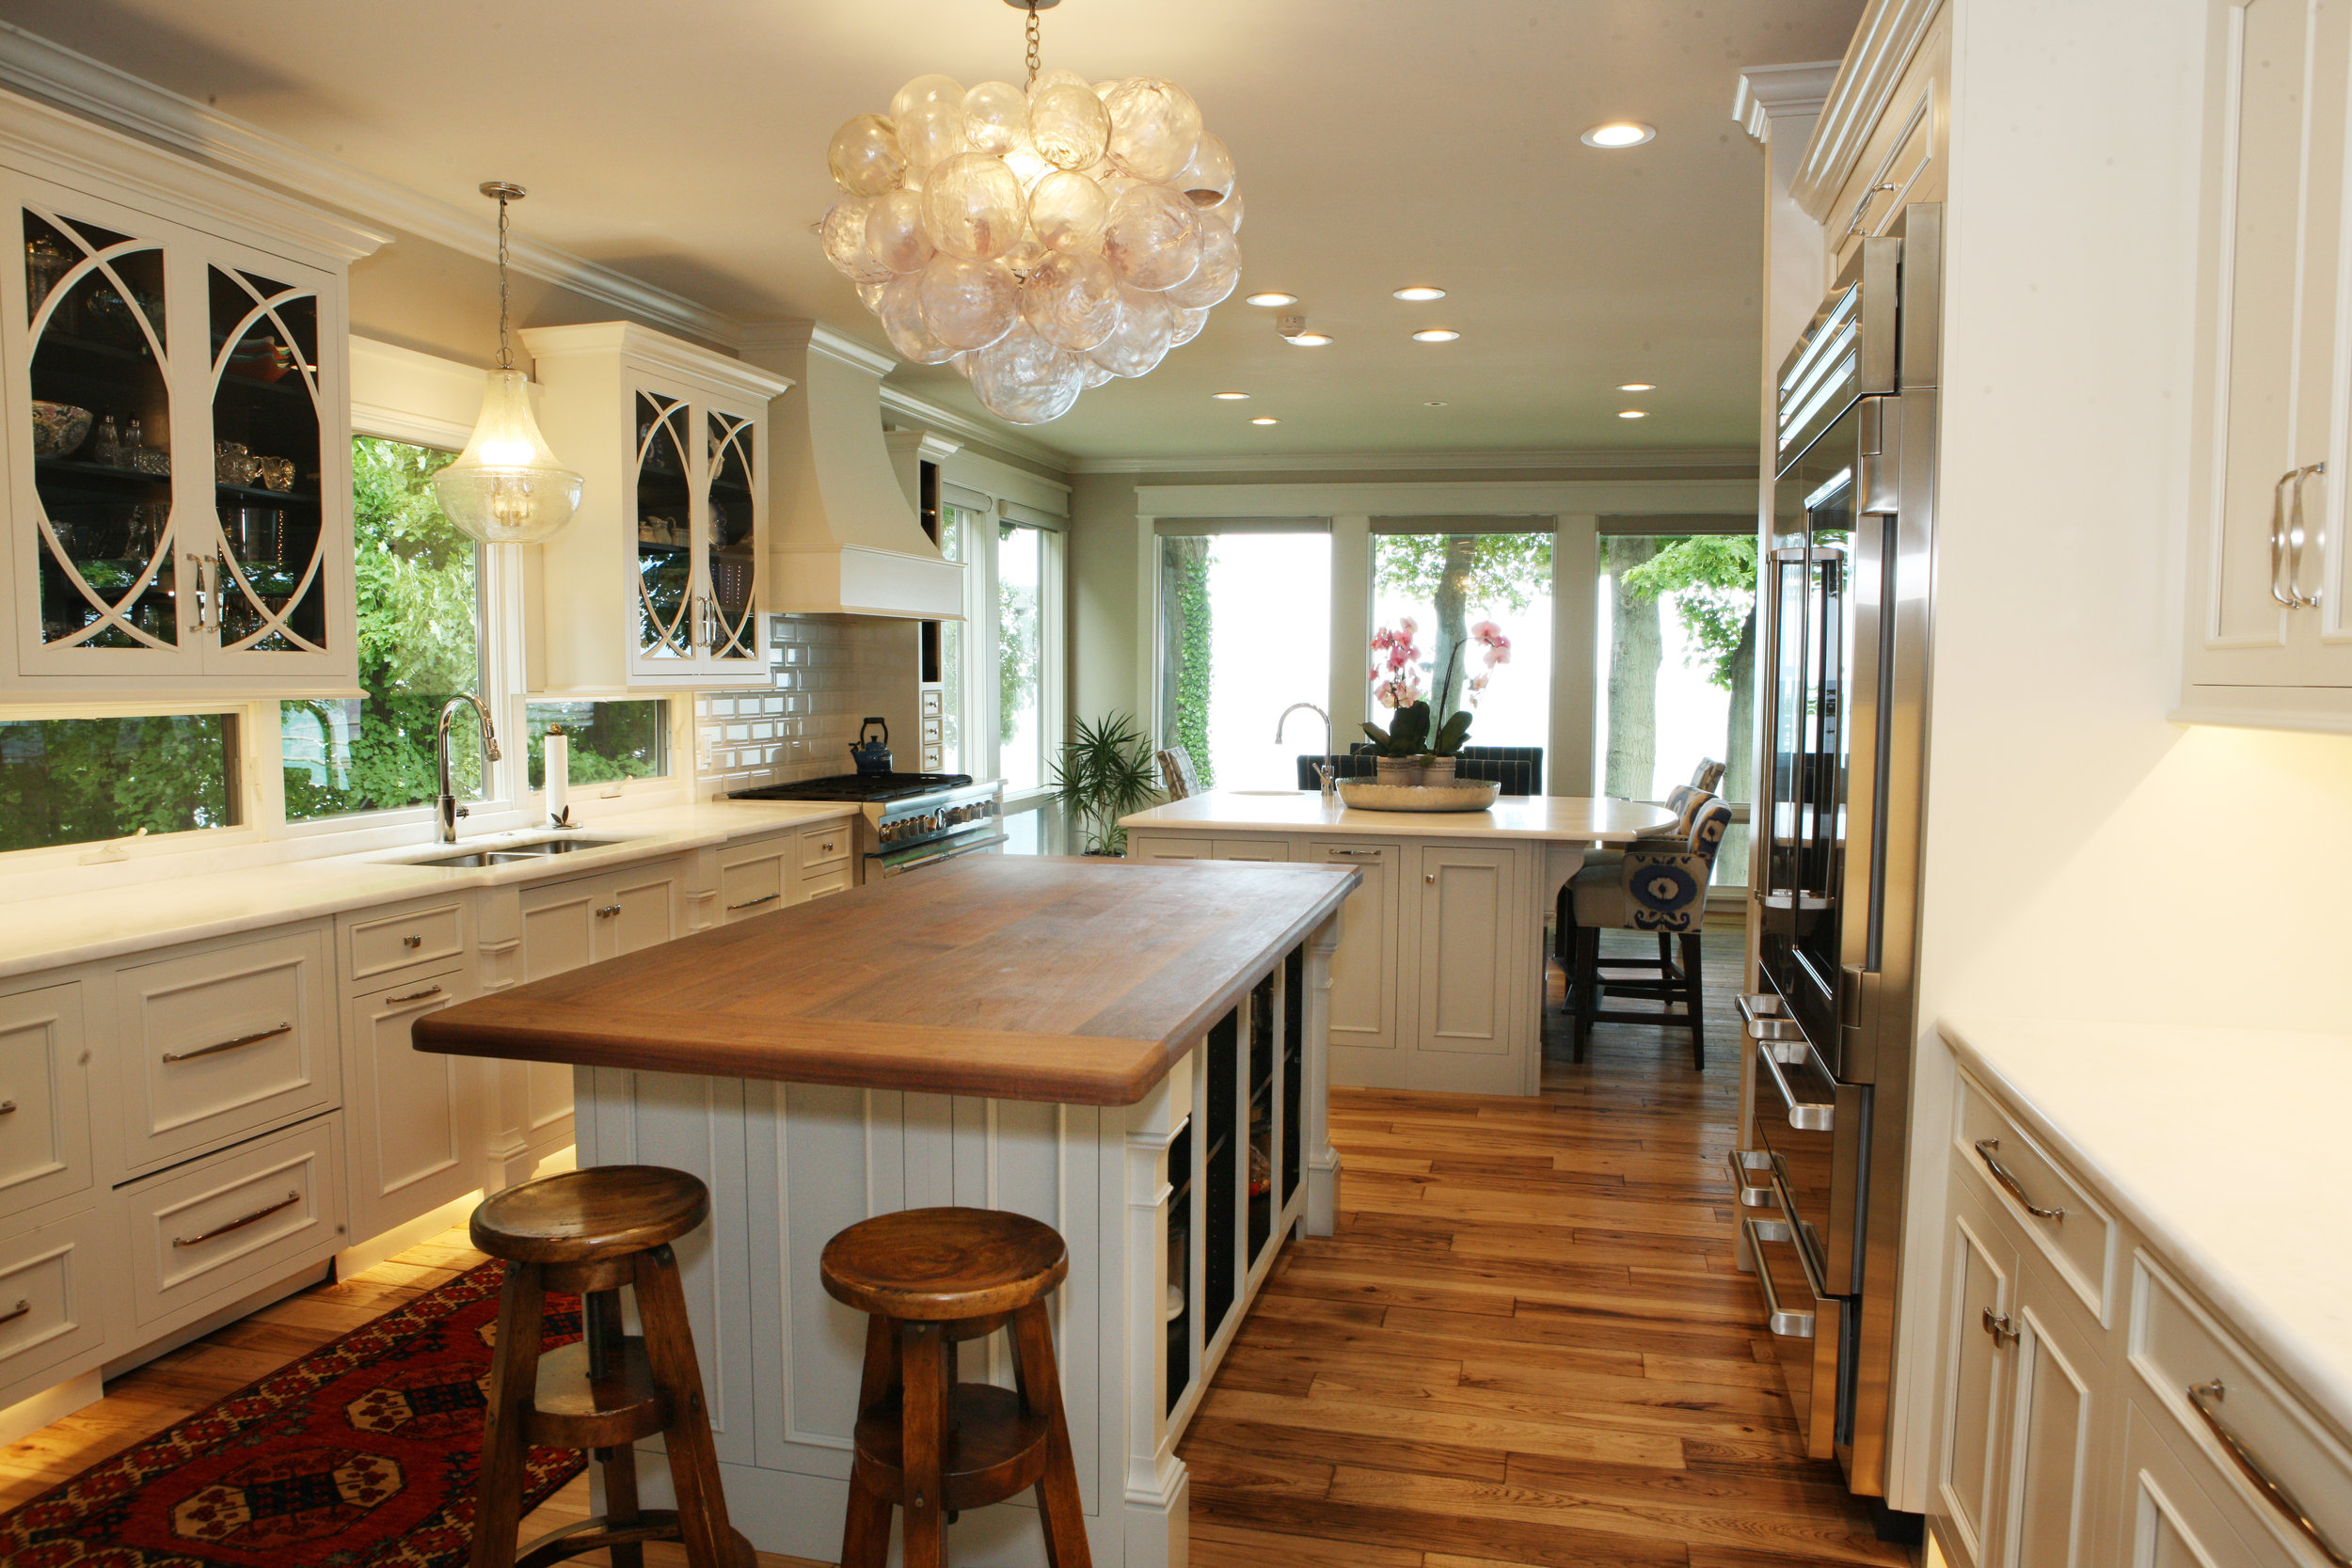 Stunning lighting from Traditions with a beautifully functional work island topped with wood.